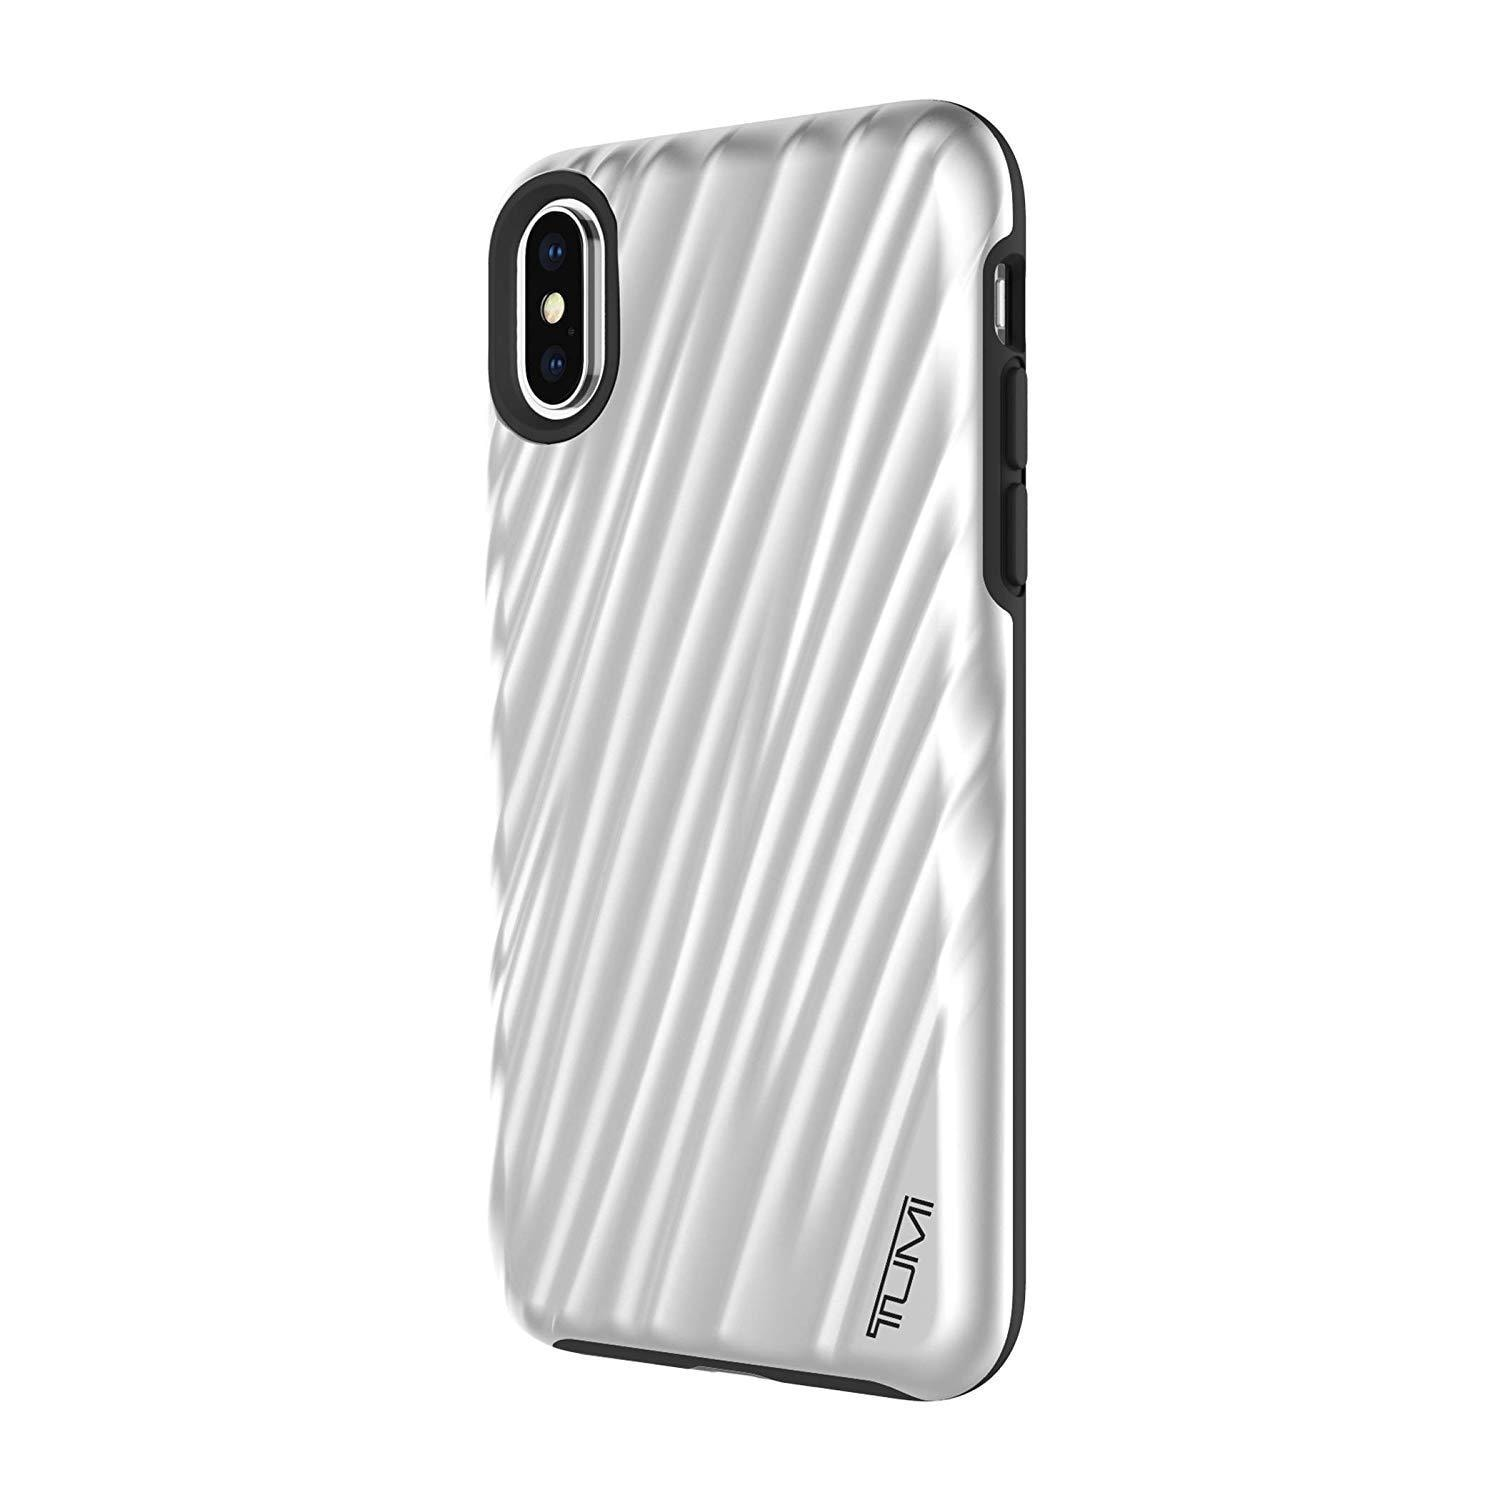 huge discount 9b451 97fe2 TUMI 19 Degree Case for iPhone Xs/iPhone X - Metallic Silver